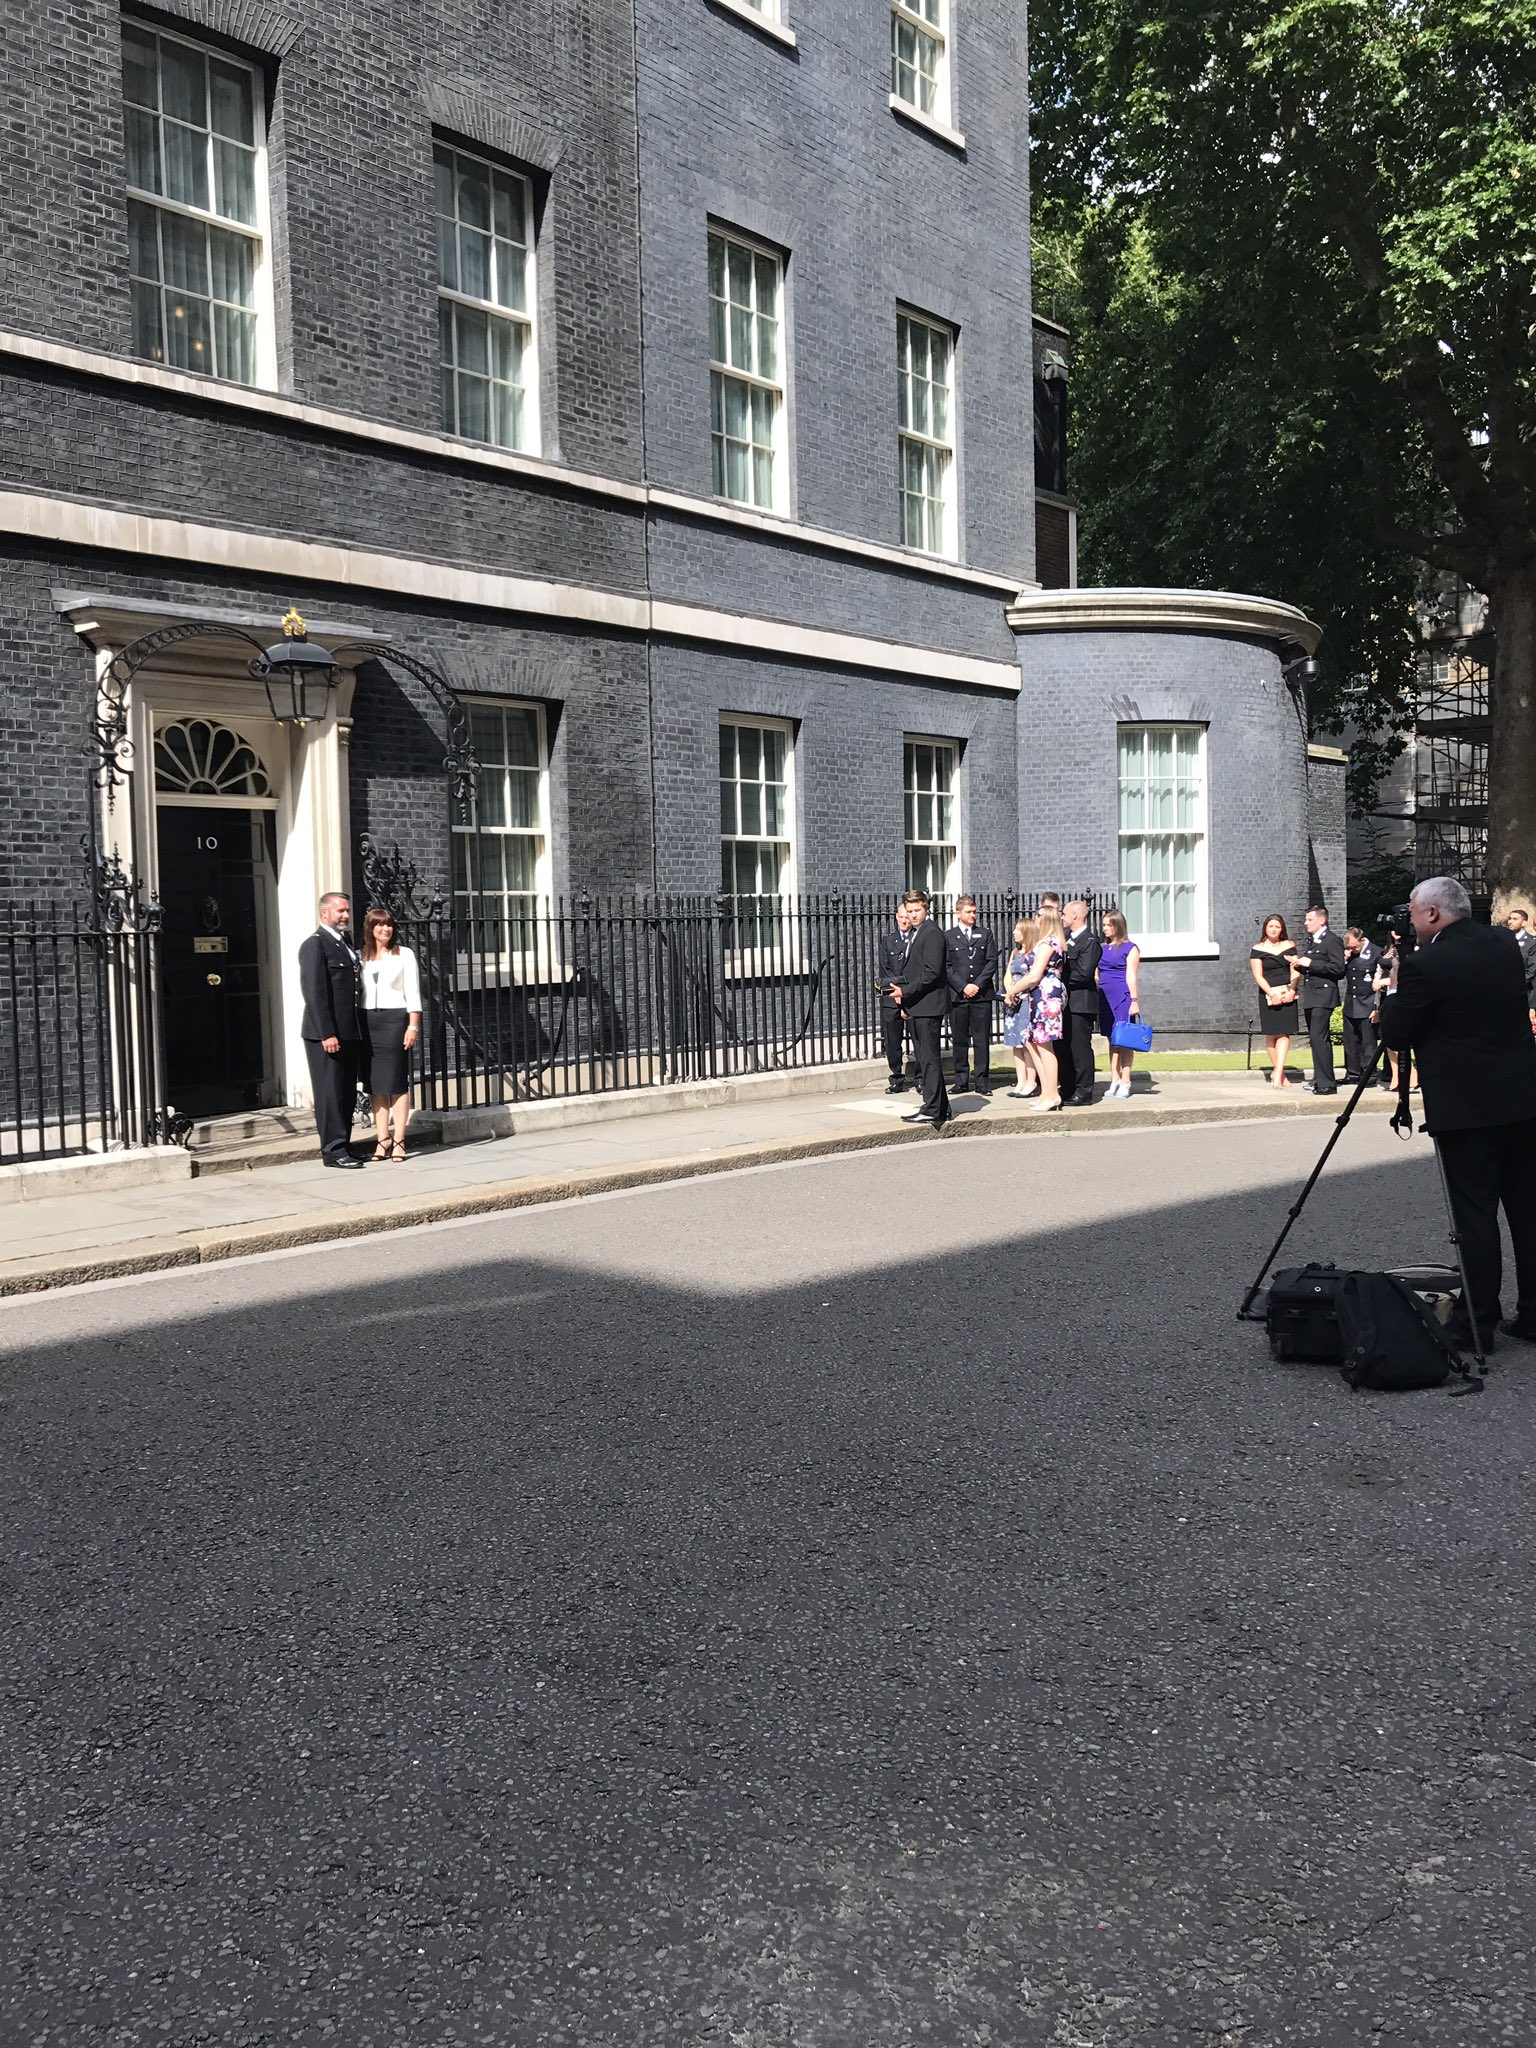 Our #PoliceBravery guests make their way in to Downing Street https://t.co/CM2DO0NfkE